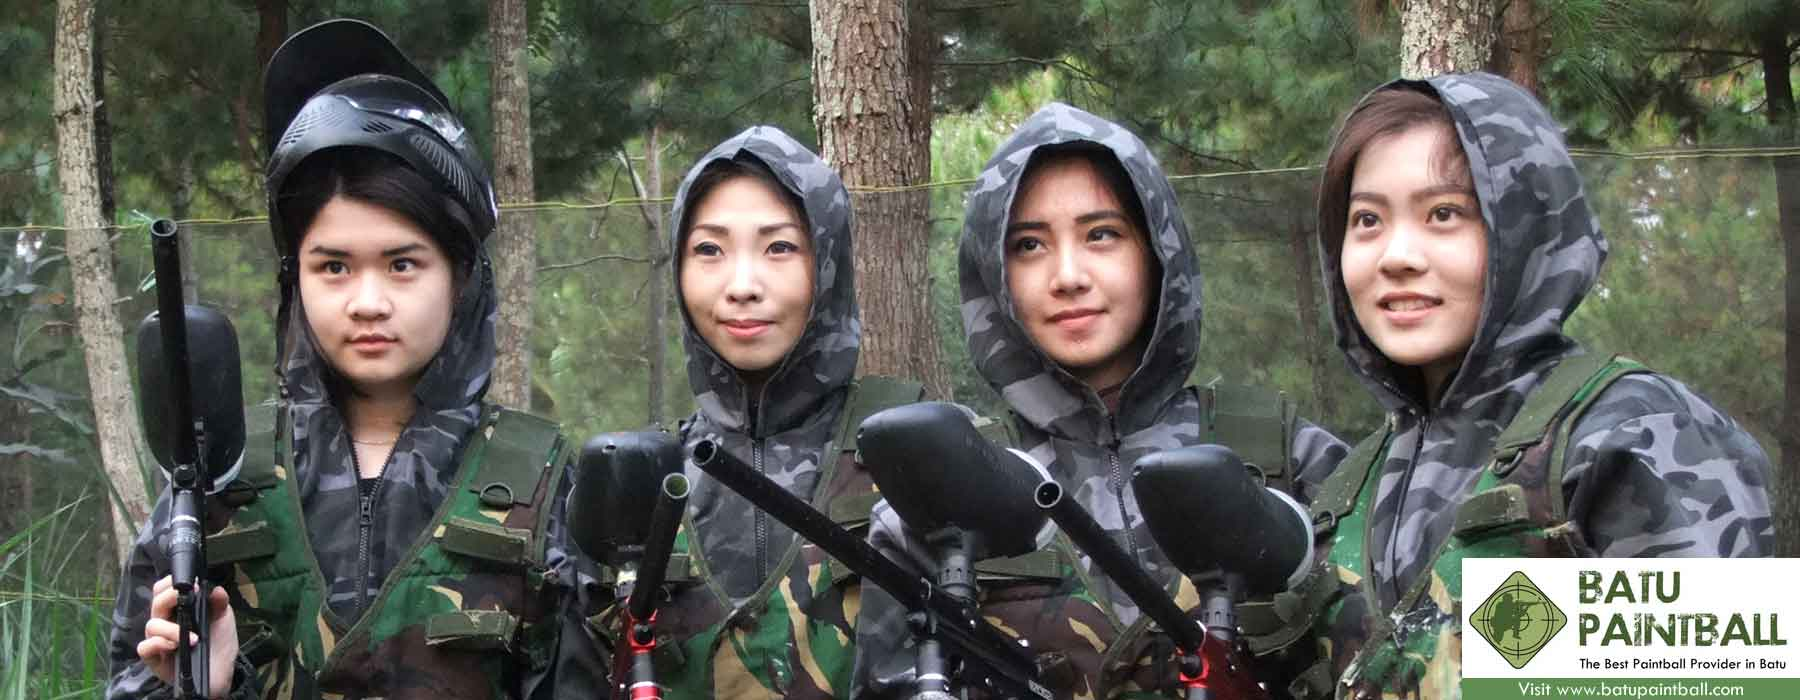 Jasa paintball di batu malang